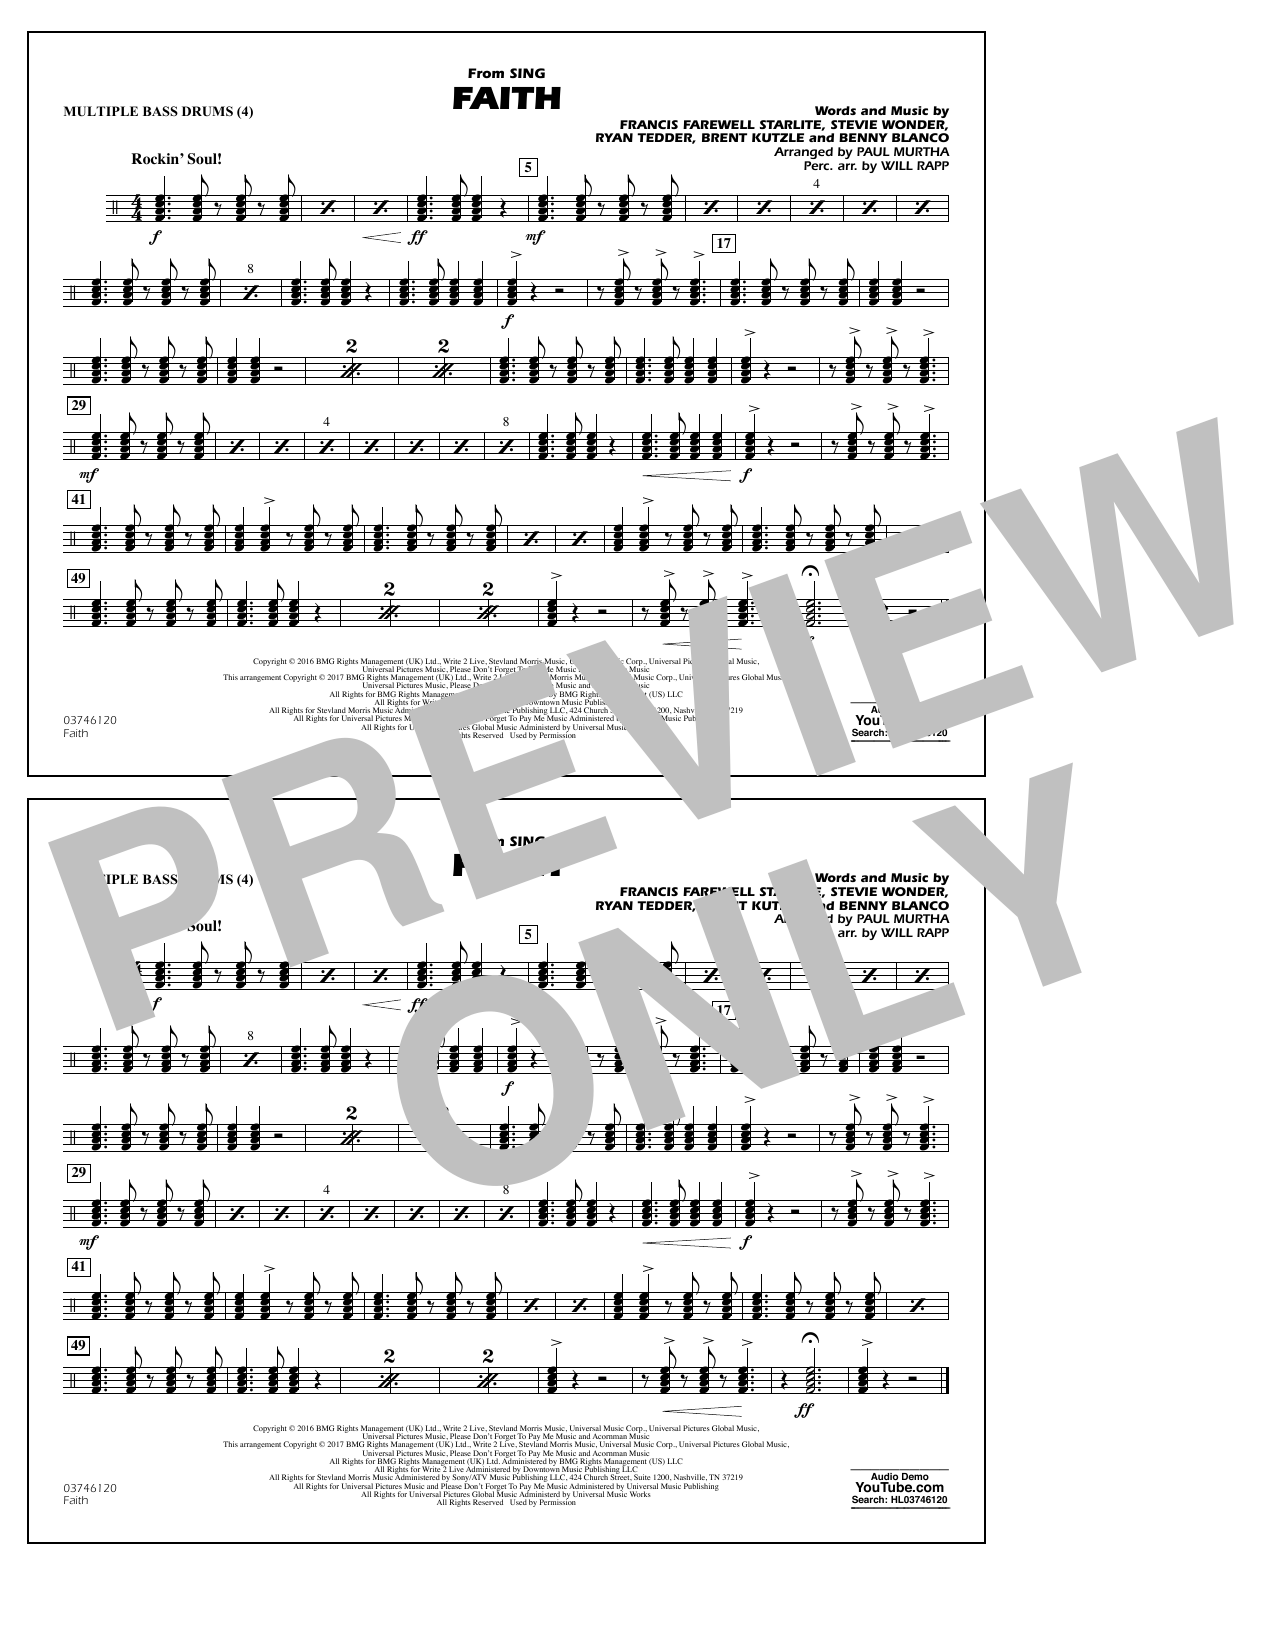 Faith (from Sing) - Multiple Bass Drums Sheet Music